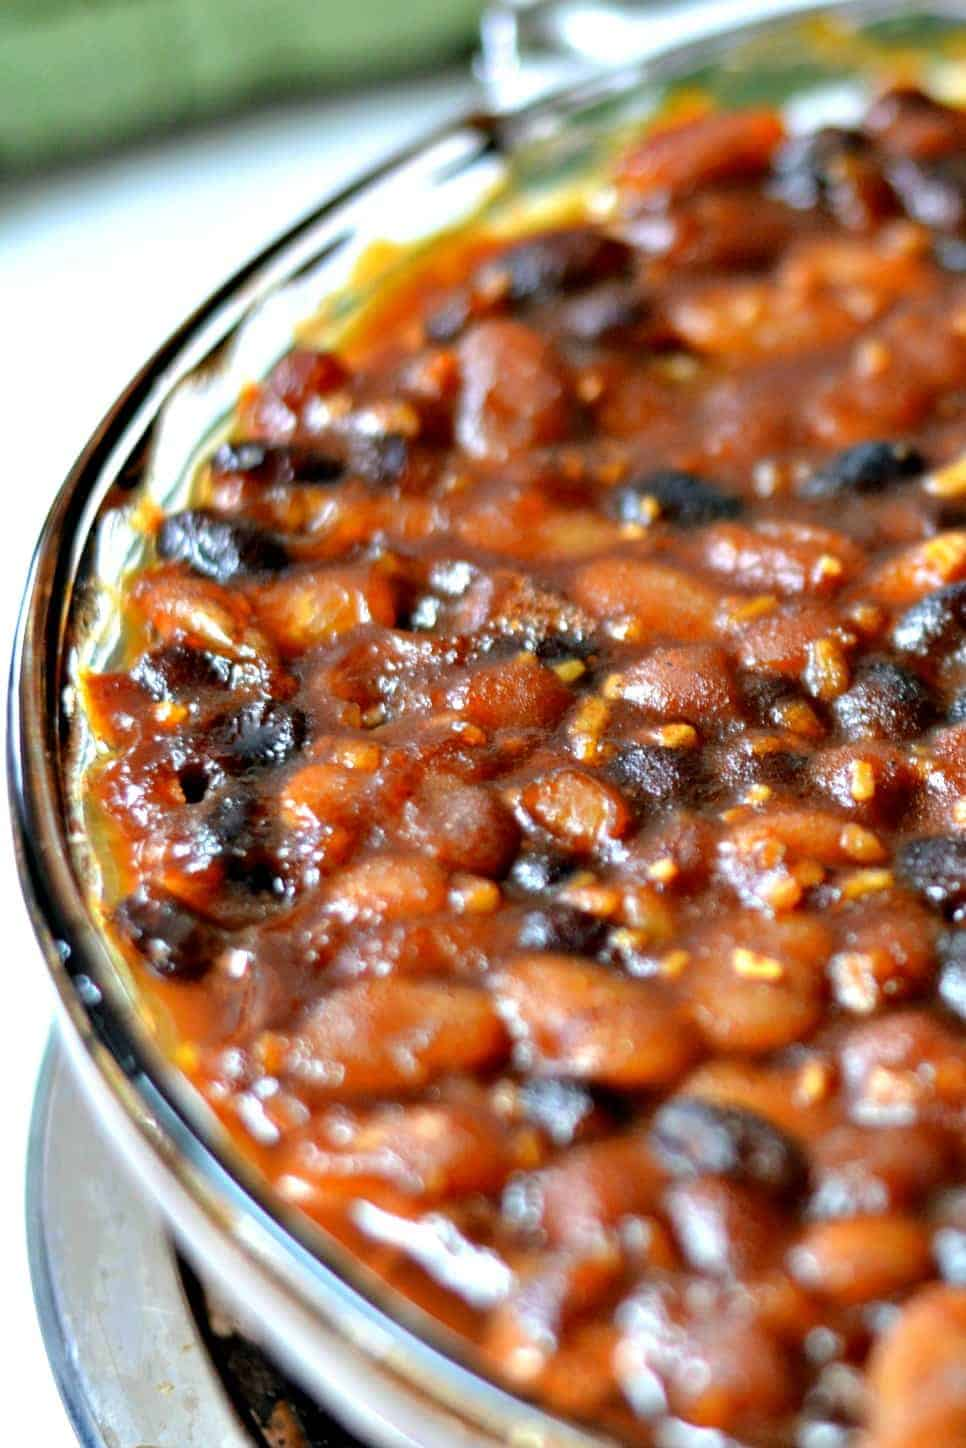 pan of baked beans